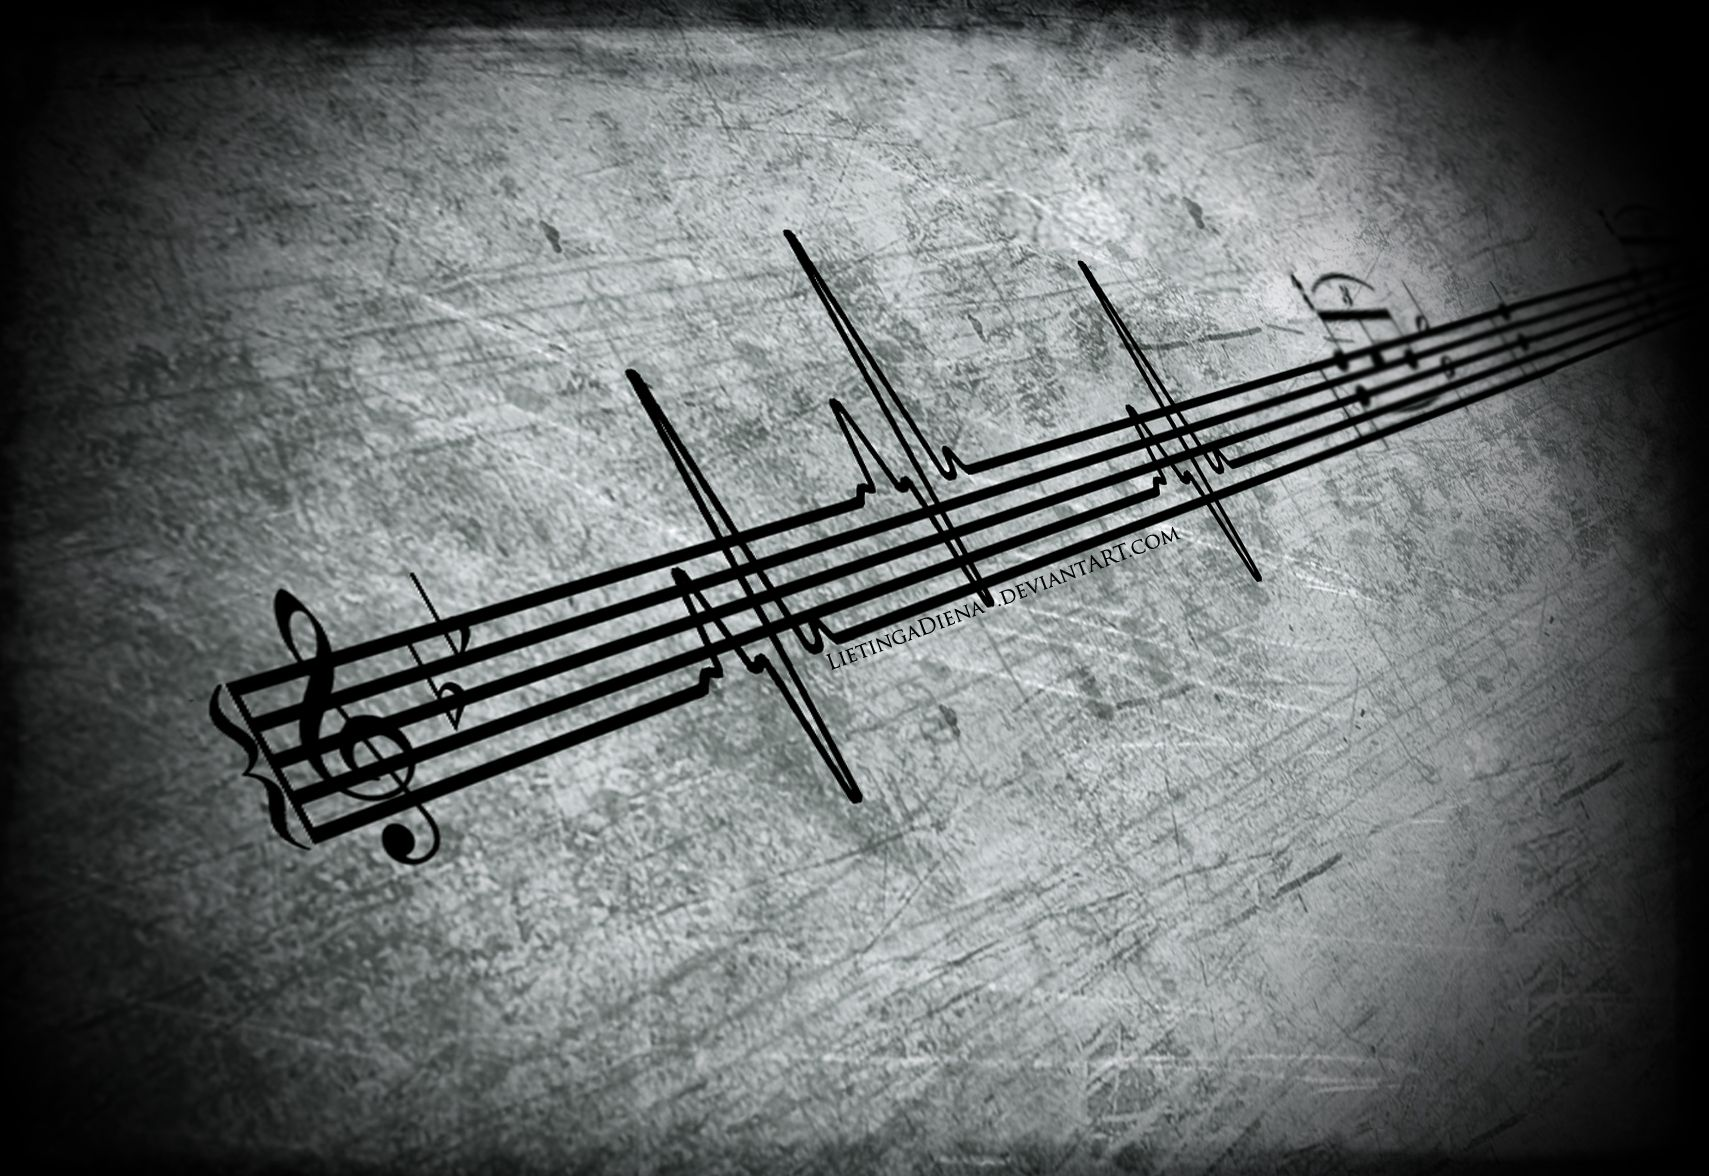 music is the thing that keeps my heart beating.